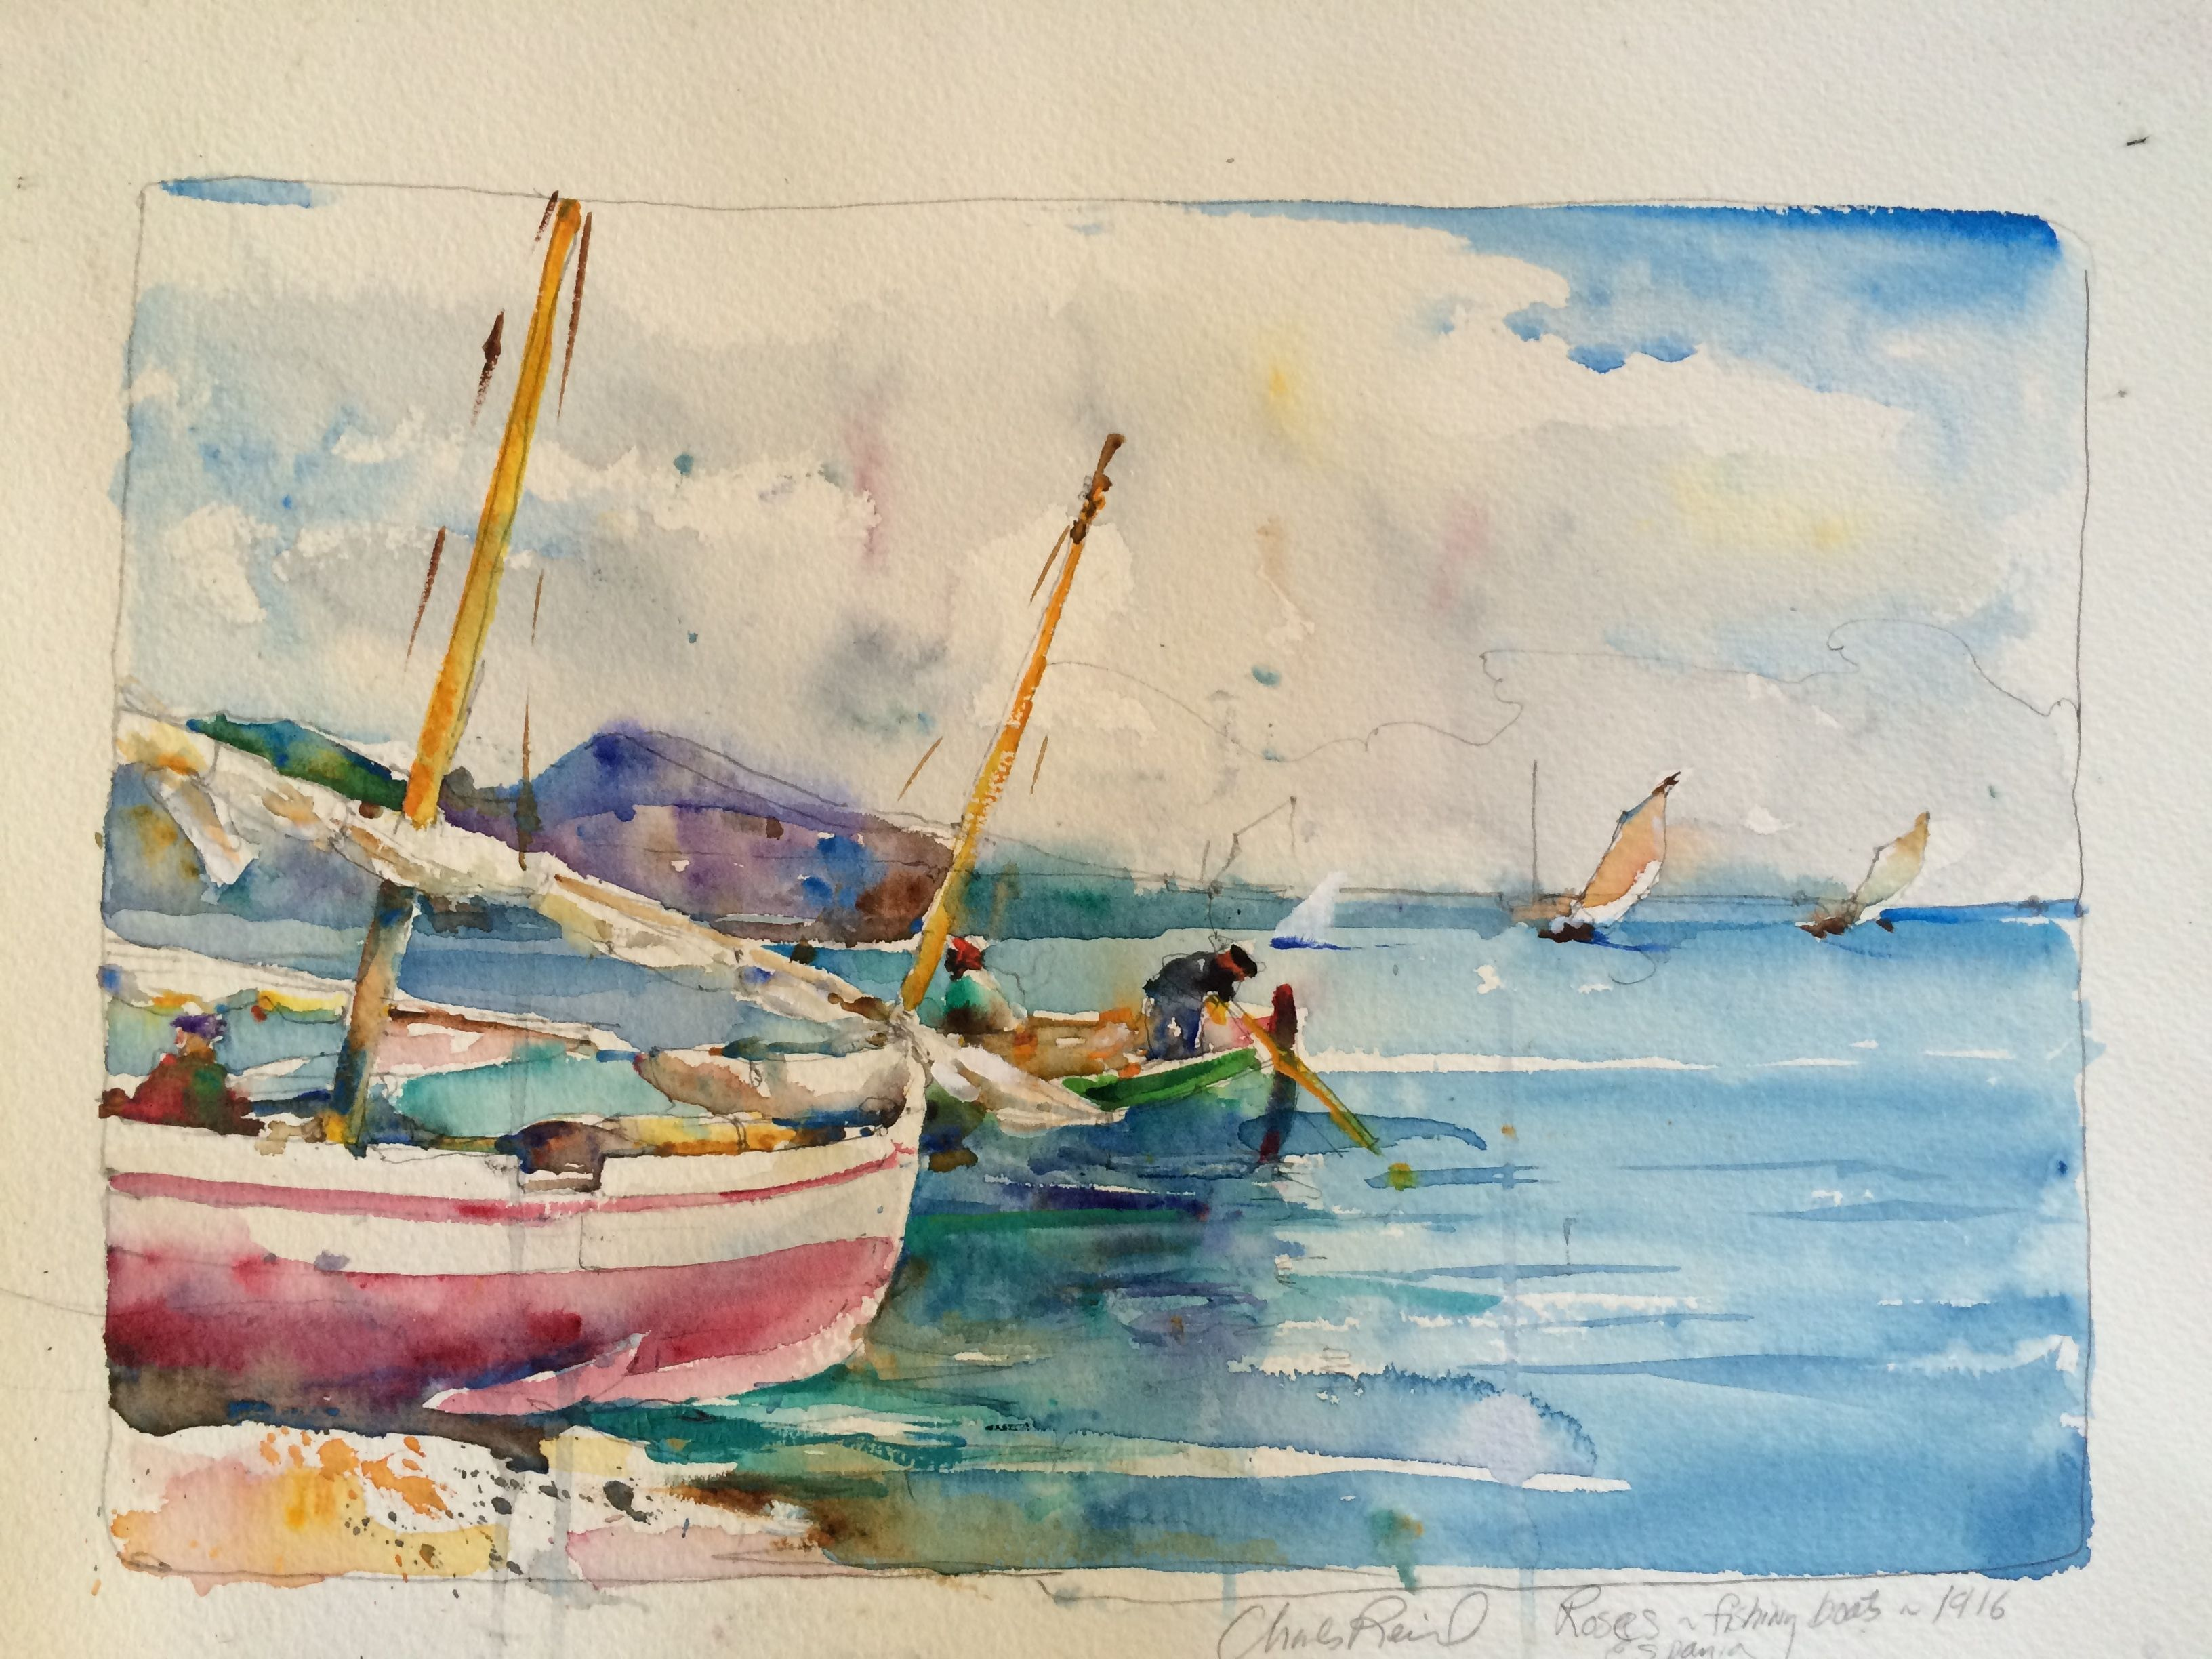 Spanish Boats Watercolor By Charles Reid Artist Watercolor Art